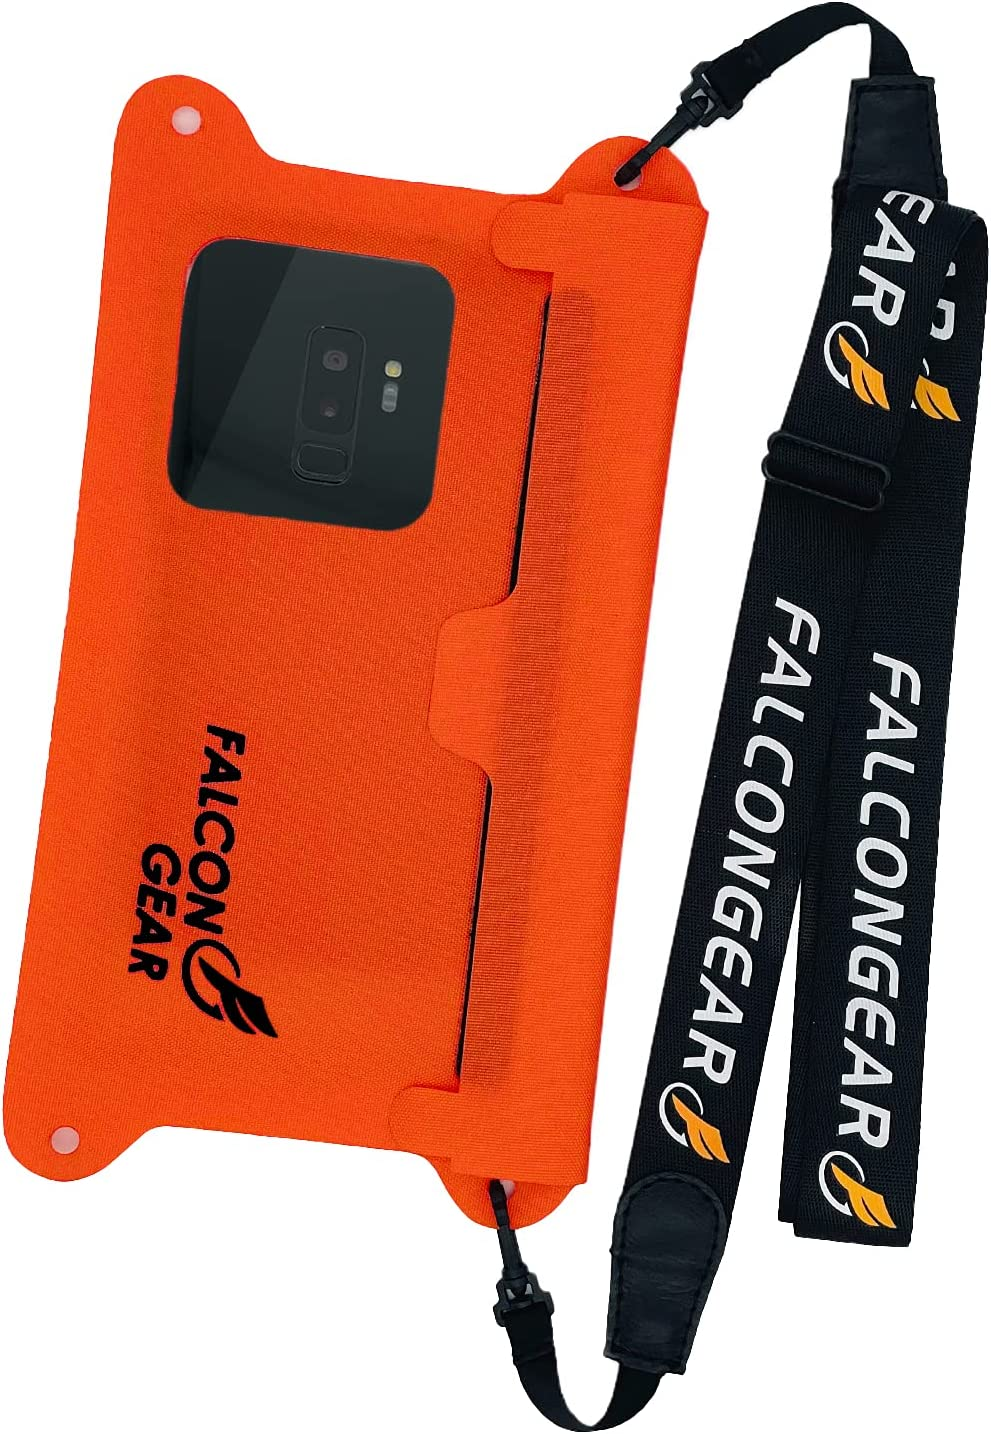 """FalconGear Waterproof Phone Pouch Universal Waterproof Phone Case with Adjustable Lanyard IPX8 Waterproof Phone Bag for iPhone 12/11 Pro Max XR Galaxy S21/20 Ultra & More Up to 7.5"""" (Orange-Red)"""